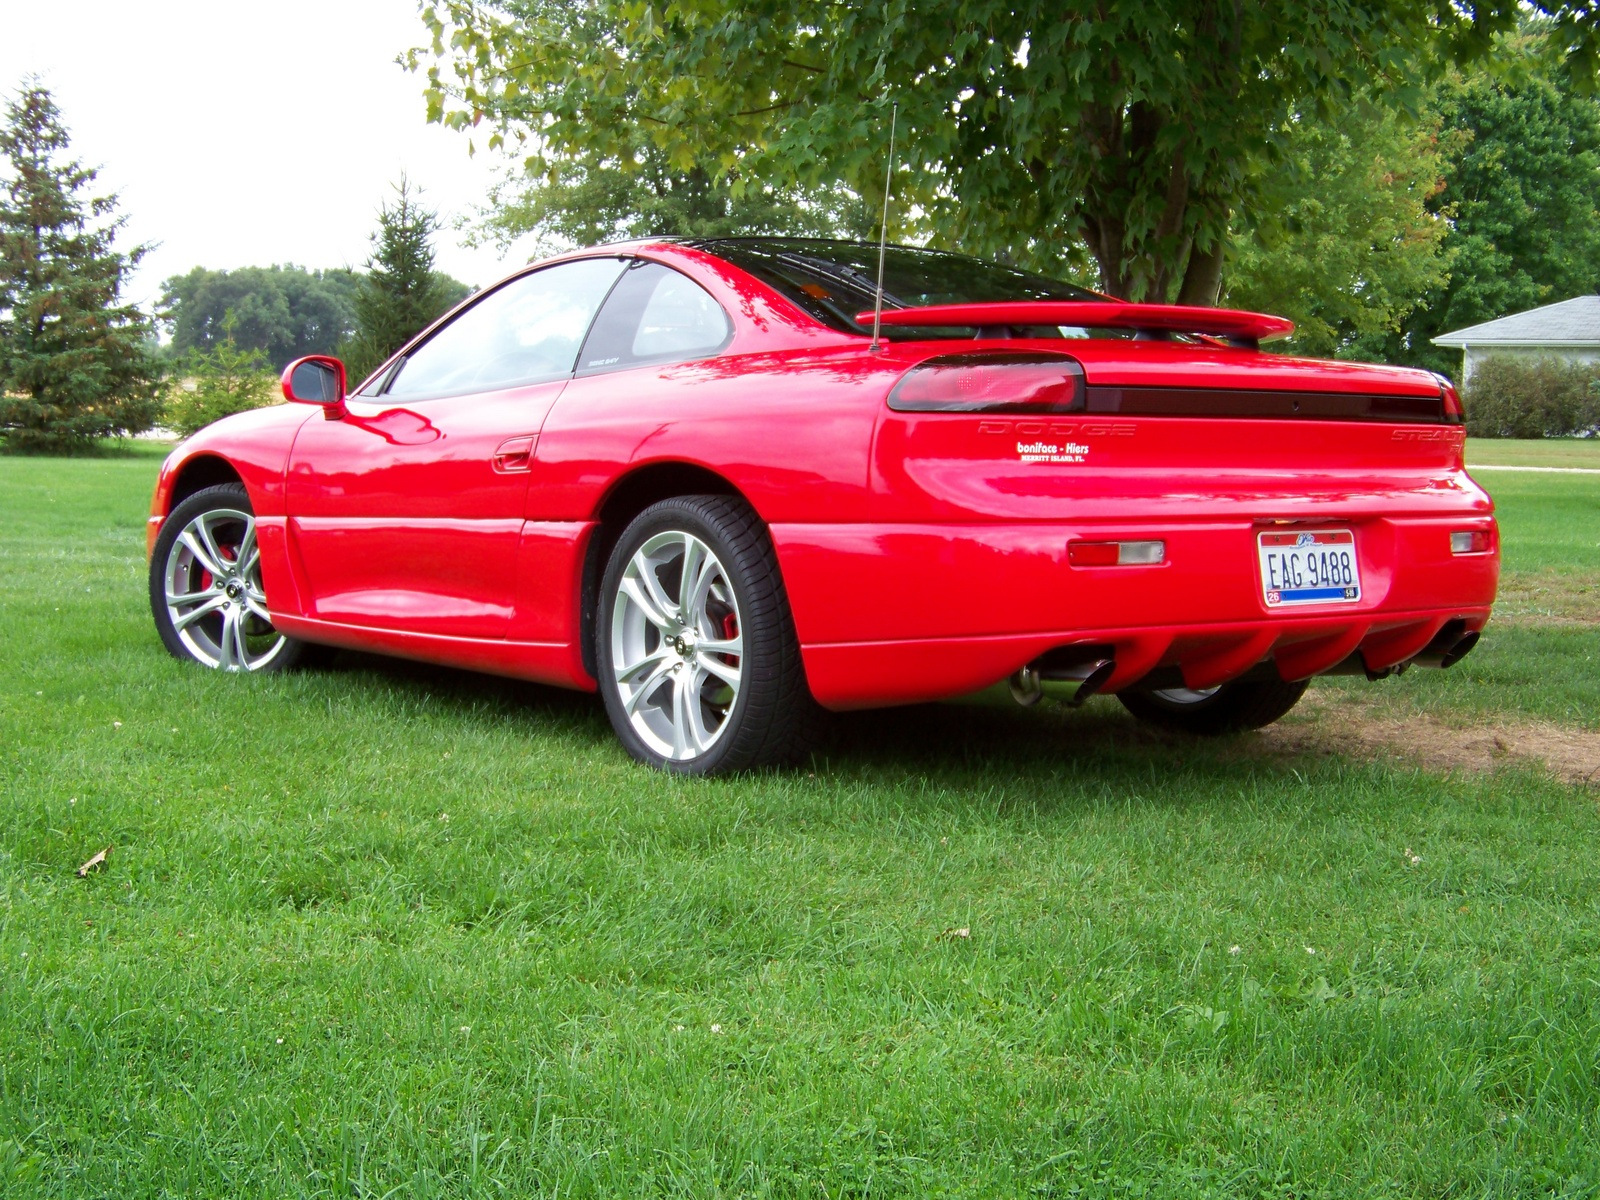 1994 Dodge Stealth 2 Dr R/T Luxury Hatchback - Pictures - 1994 Dodge ...